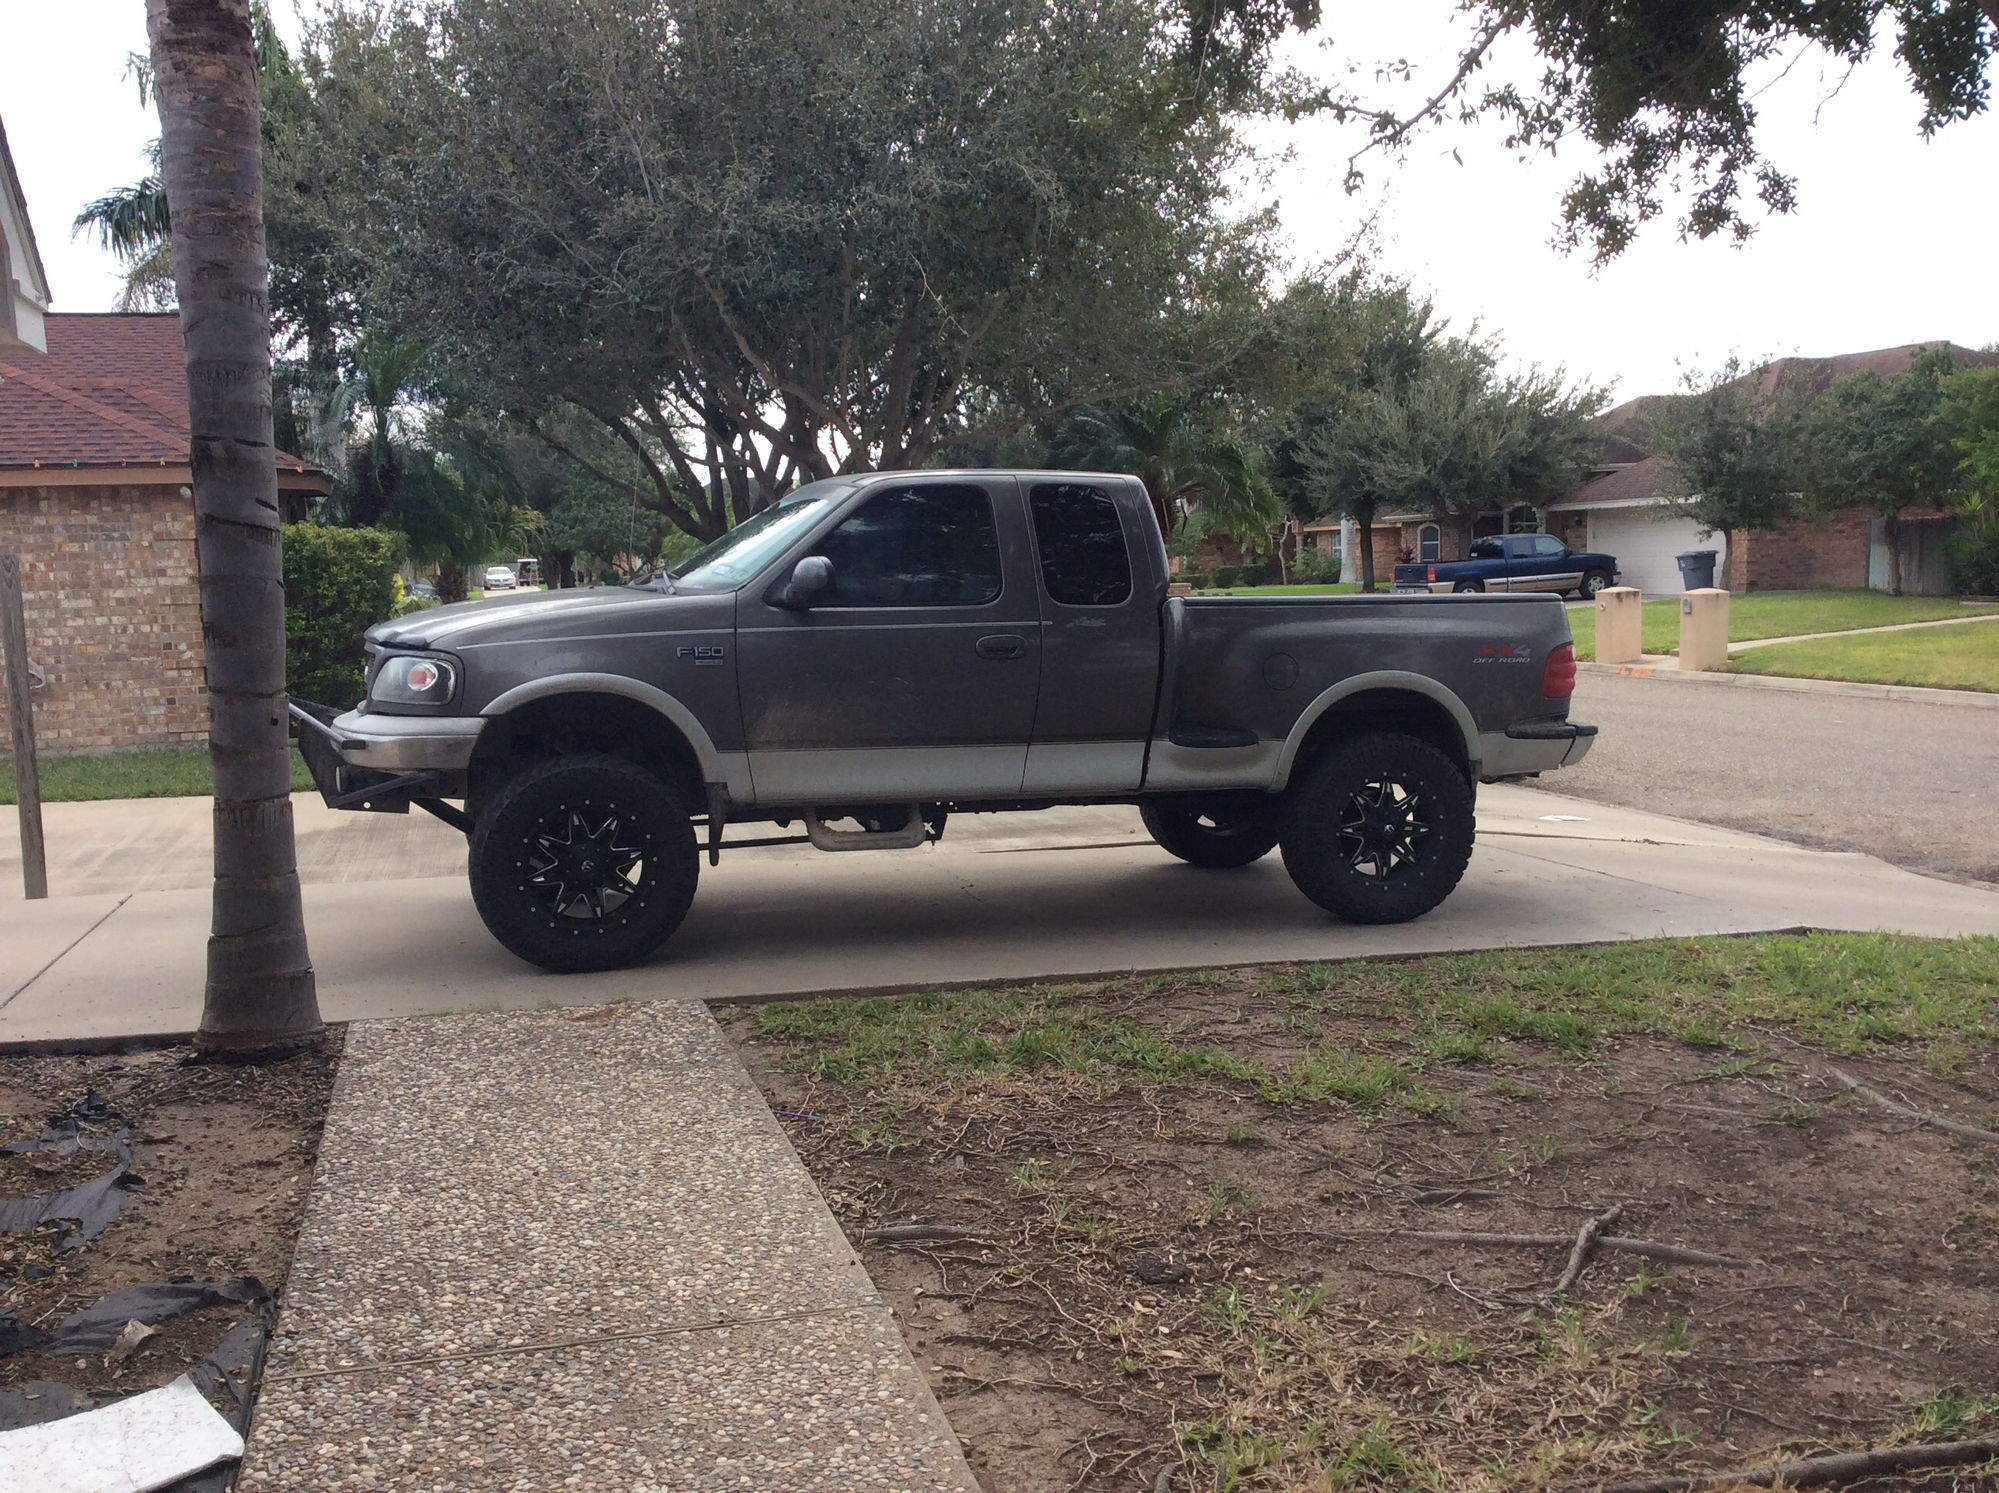 it kind of a prerunner i already got kyng shocks and new leaf springs with upgraded control arms and sway bars just need the power to get her going